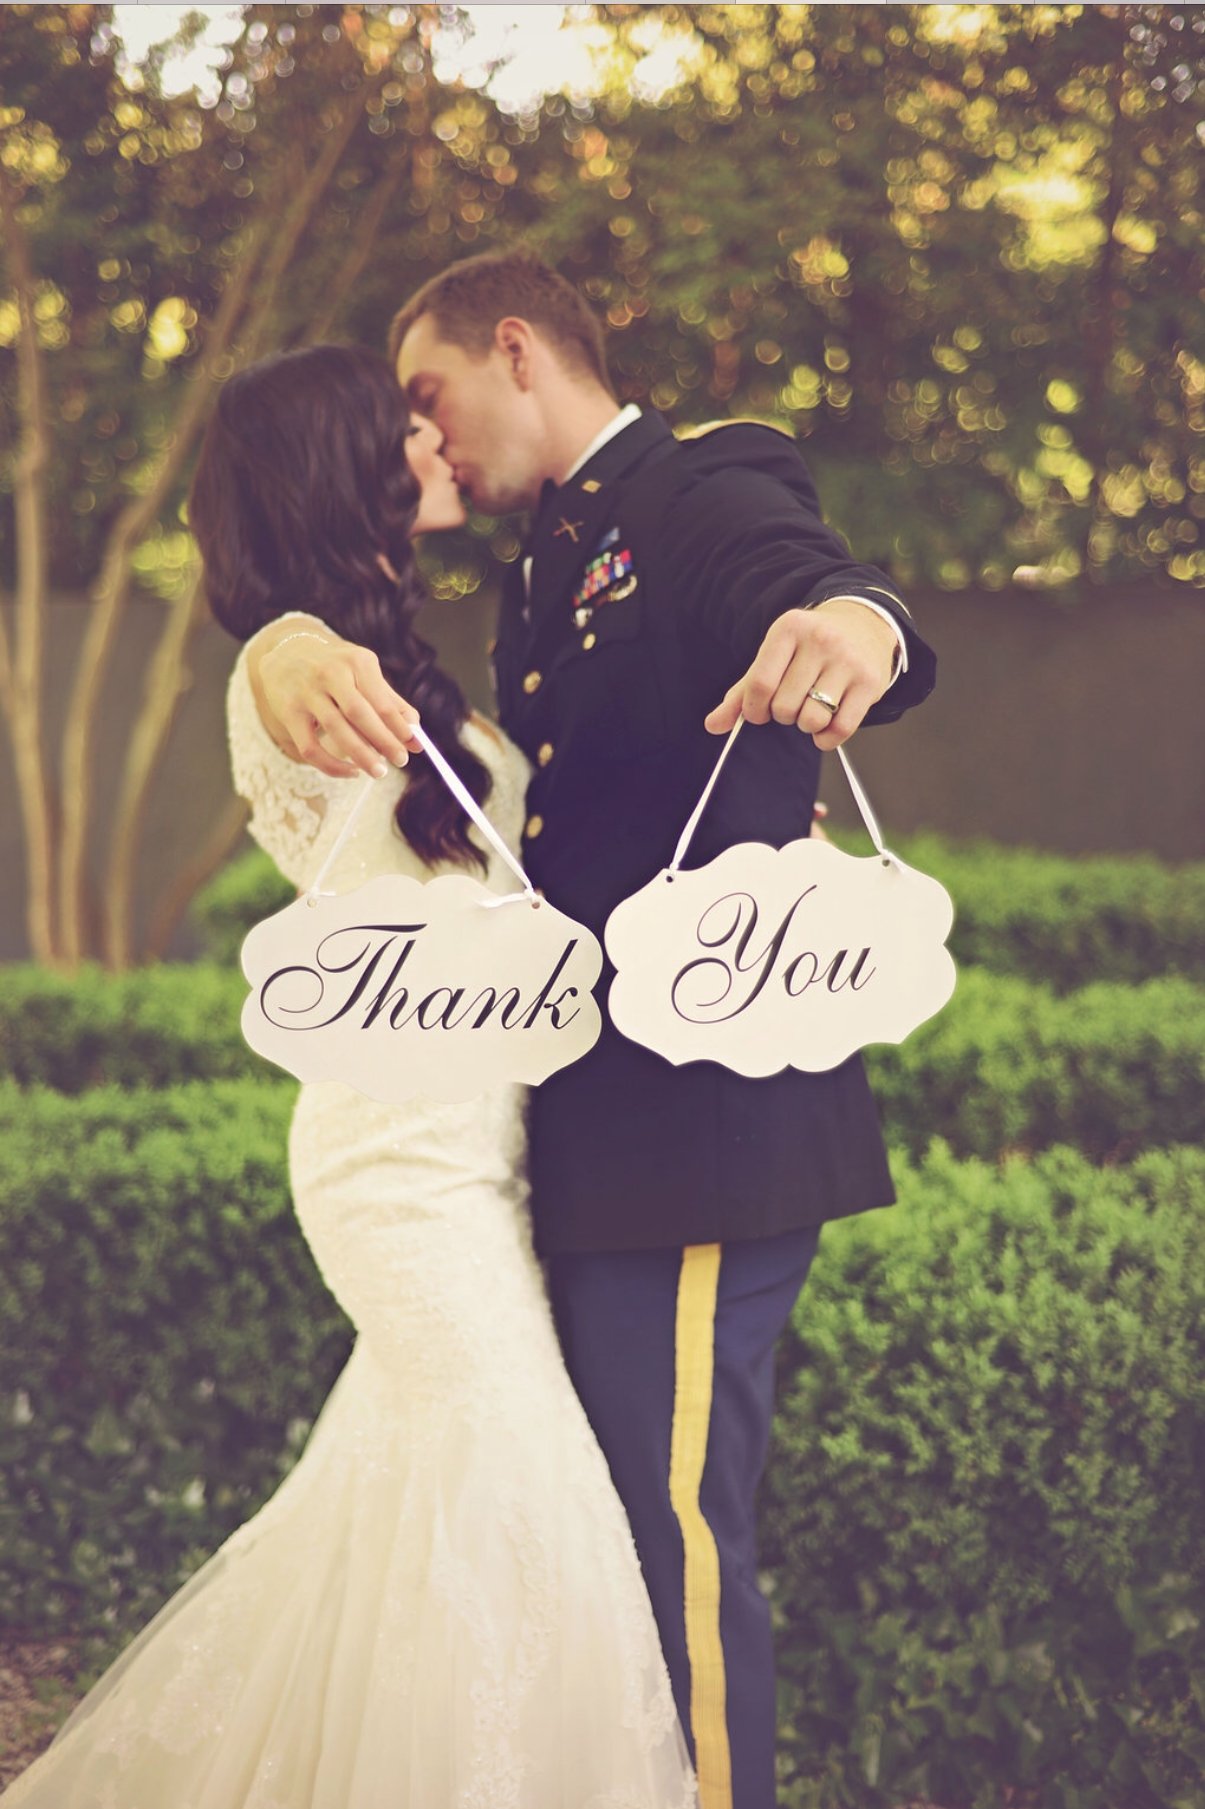 Wedding Thank You Card Photo Ideas - Military Ceremony Atlanta GA